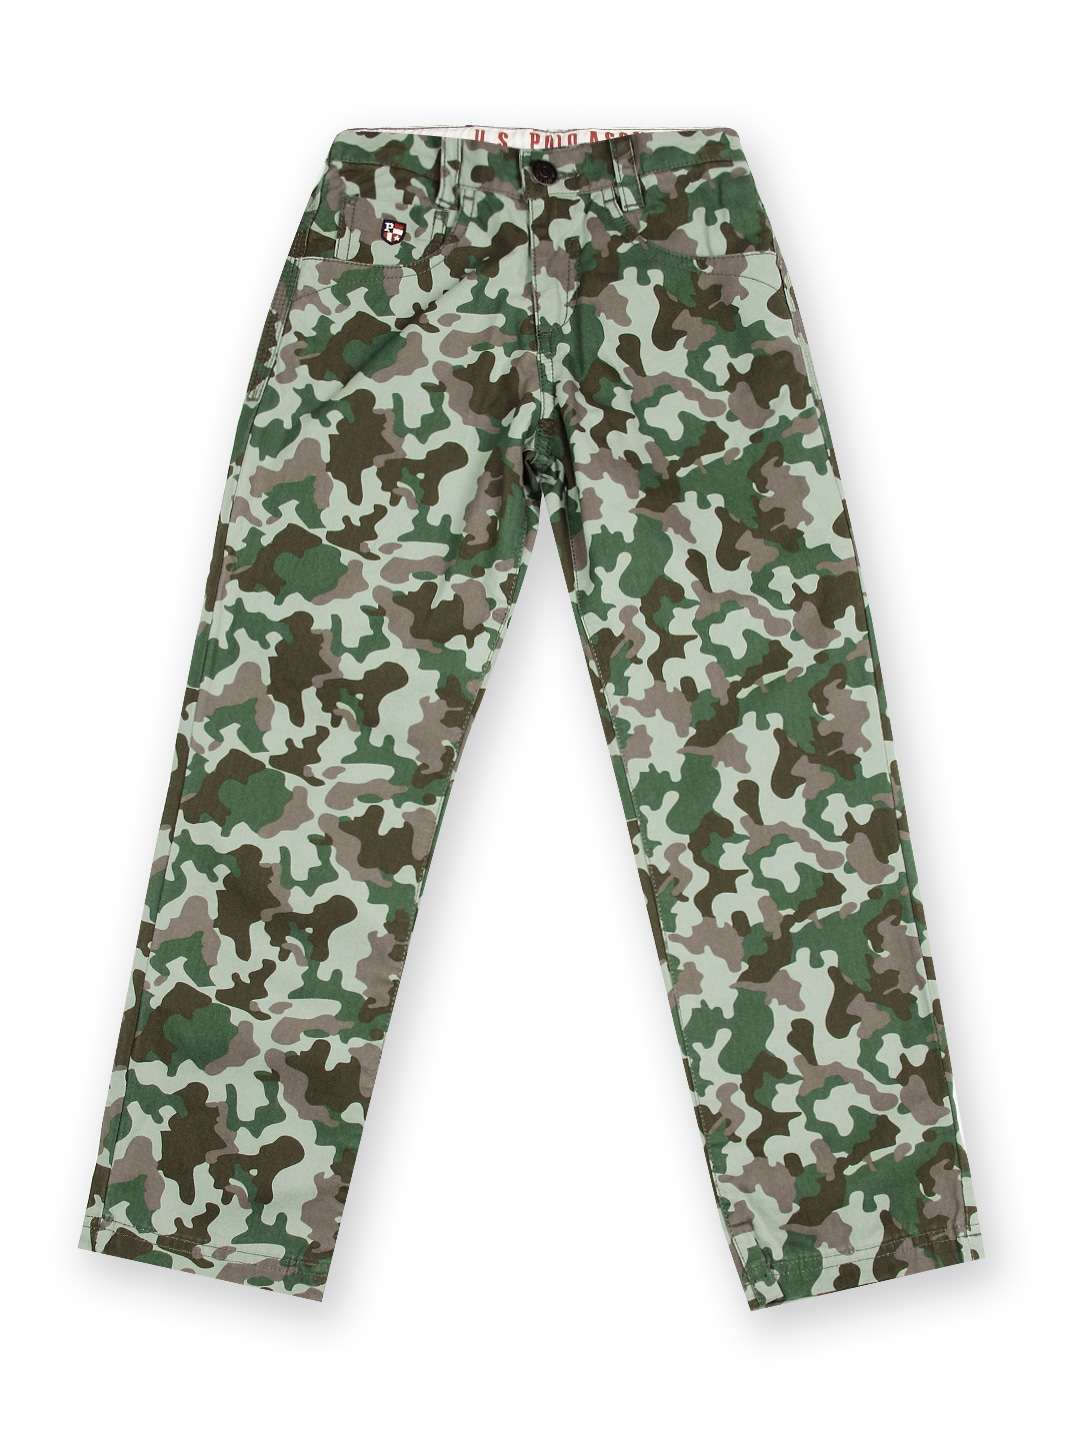 U.S. Polo Assn. Kids Boys Green & Brown Camouflage Printed Trousers